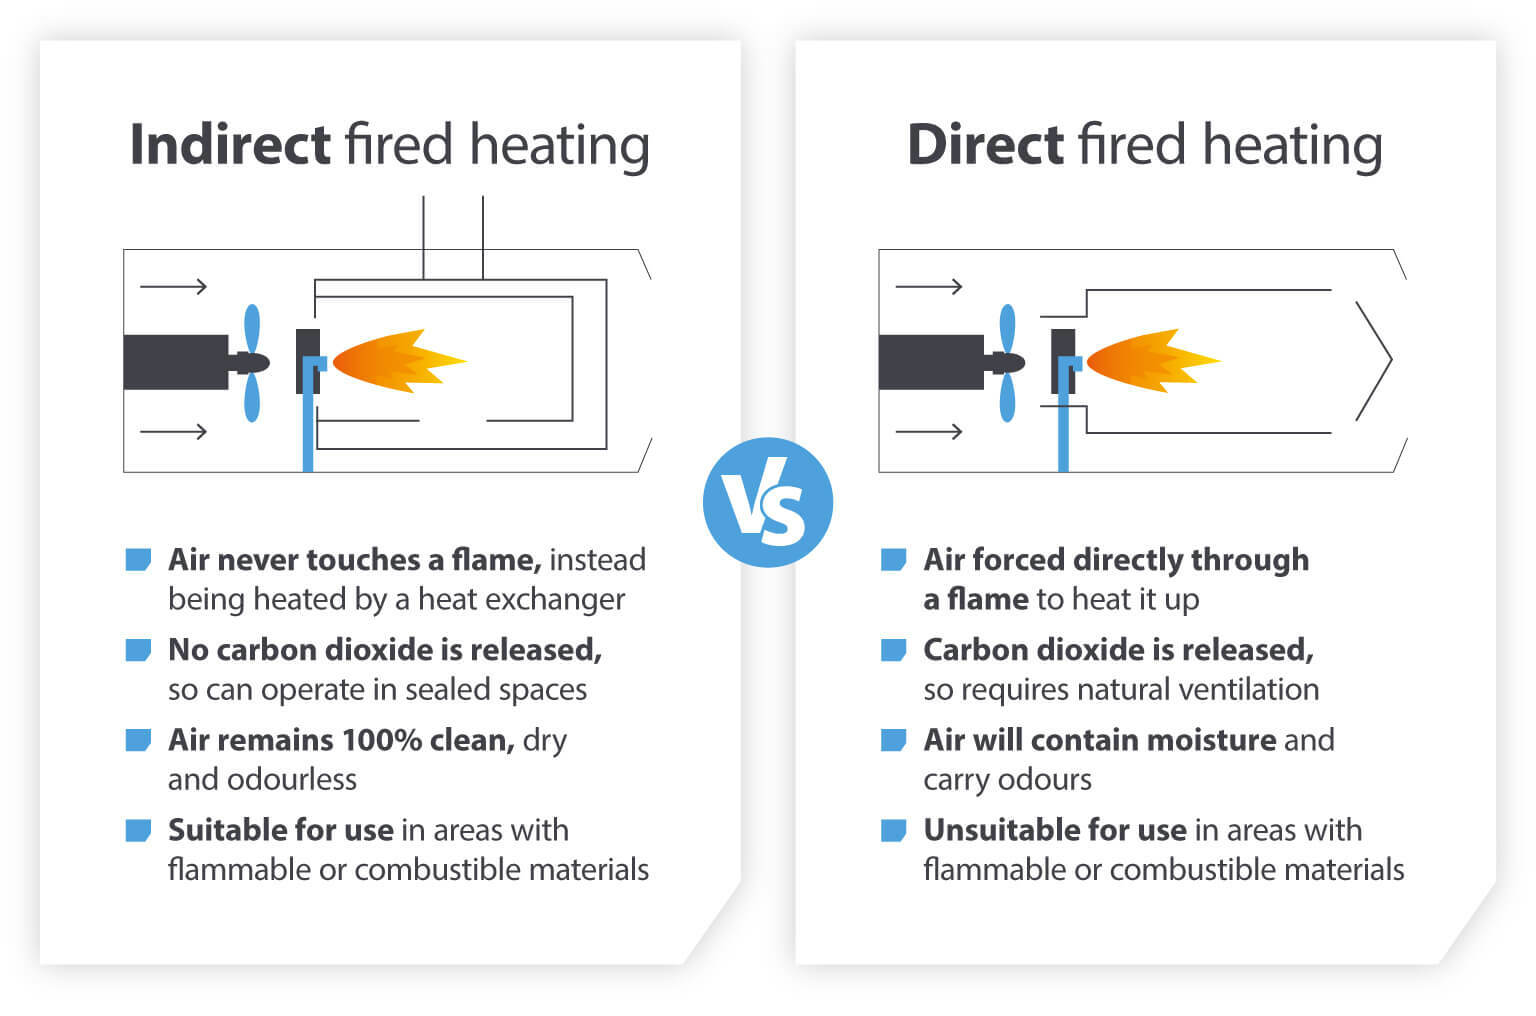 Indirect fired heating vs Direct fired heating